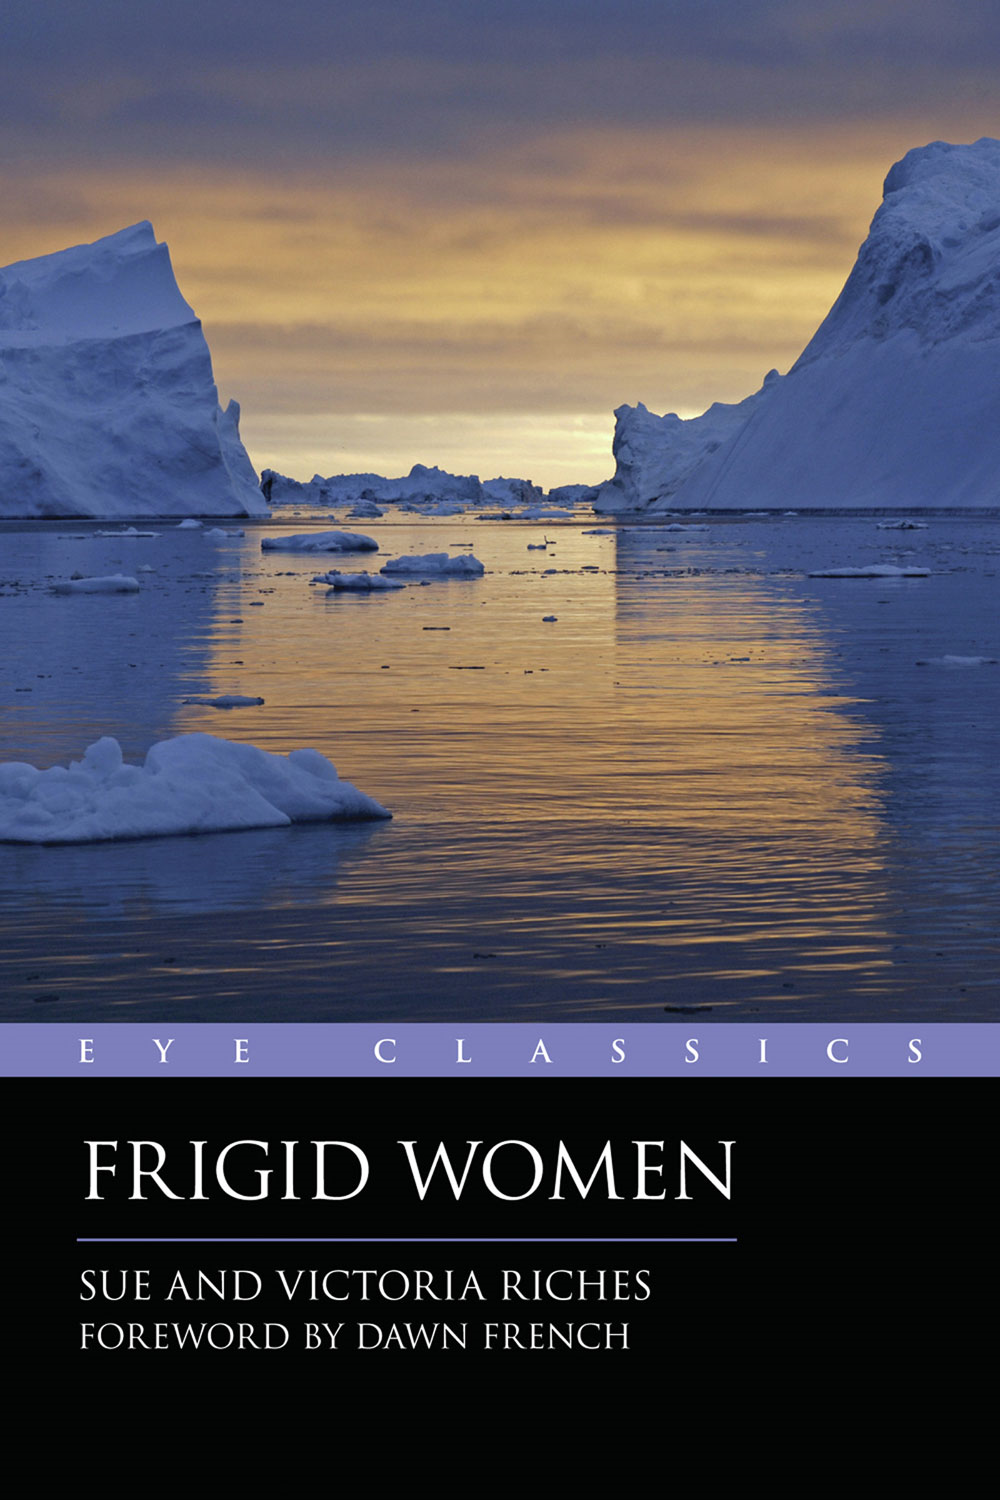 Frigid Women